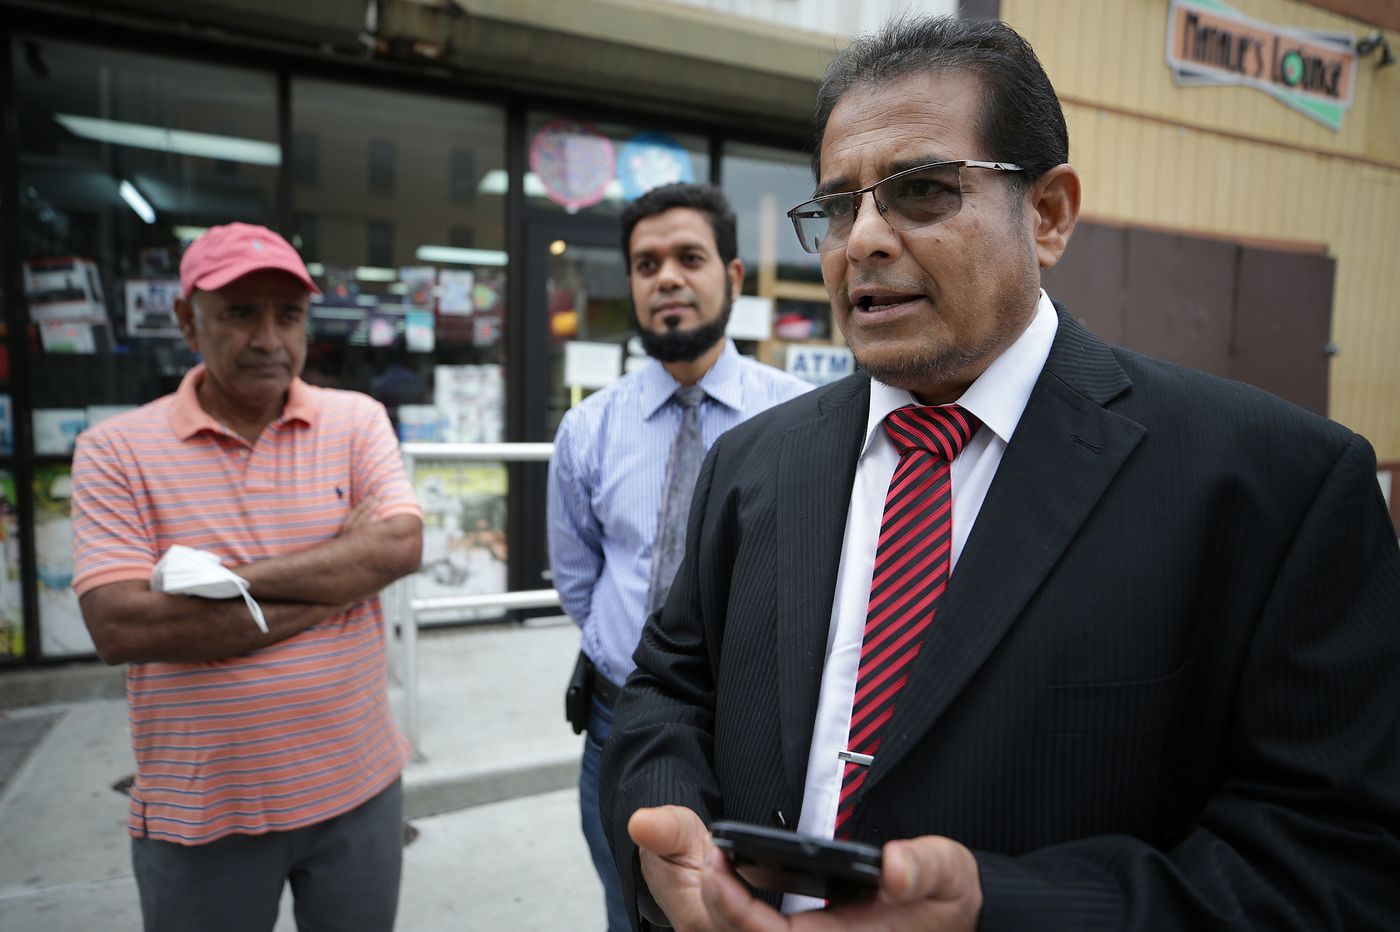 Bangladeshi immigrants are winning a seat at the table in the 'club' of Philly politics